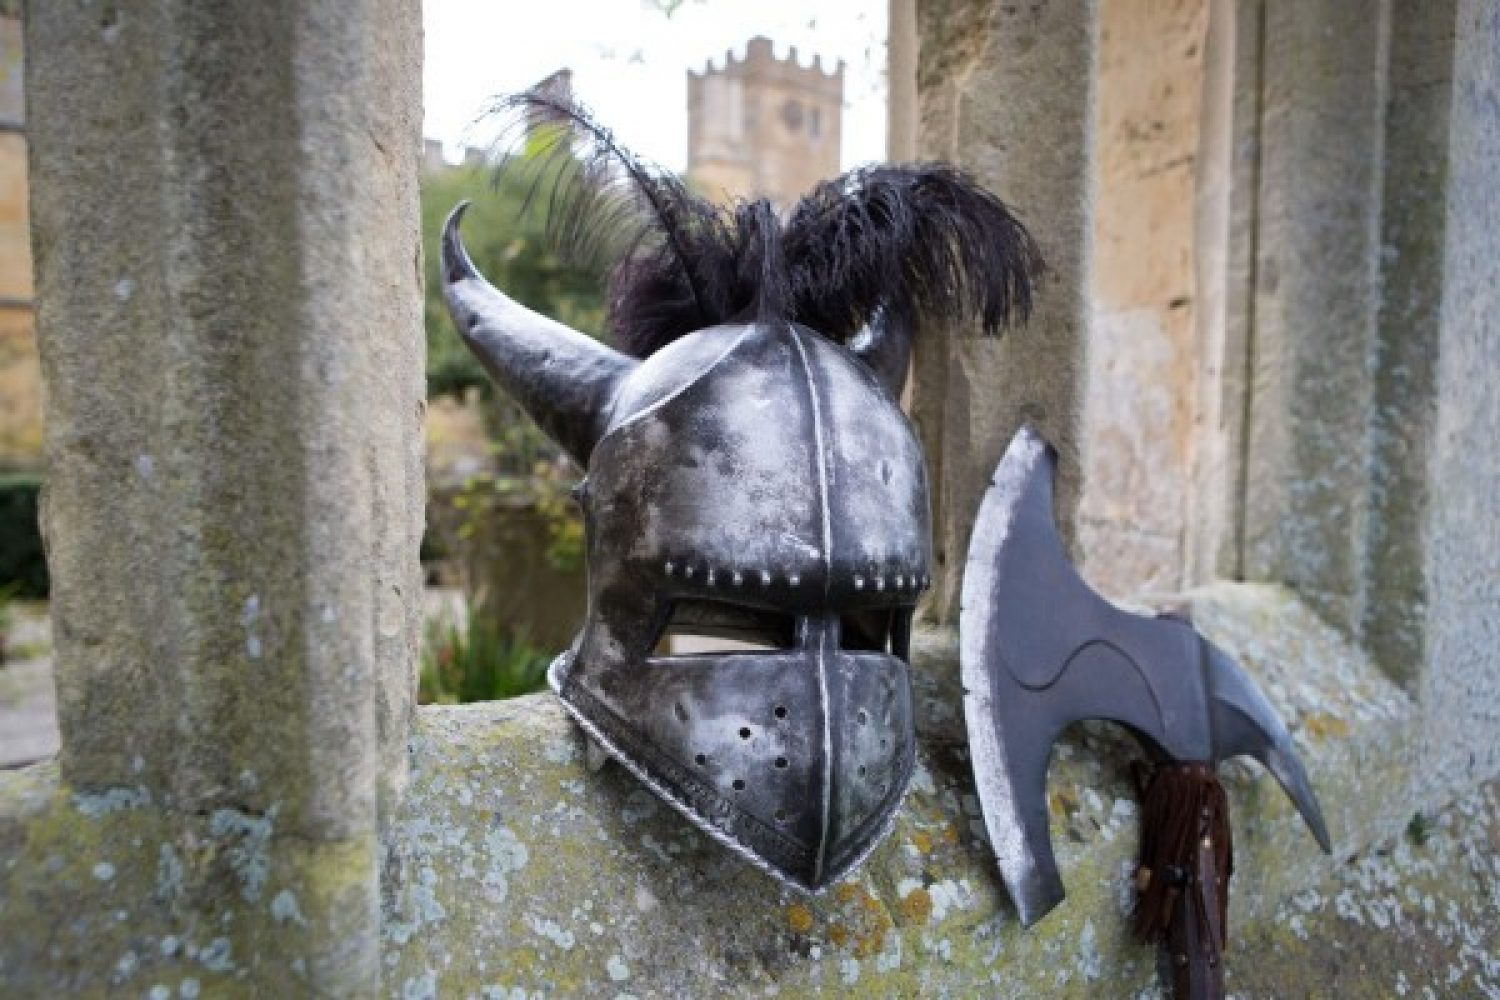 A medieval helmet and axe sit perched on a wall